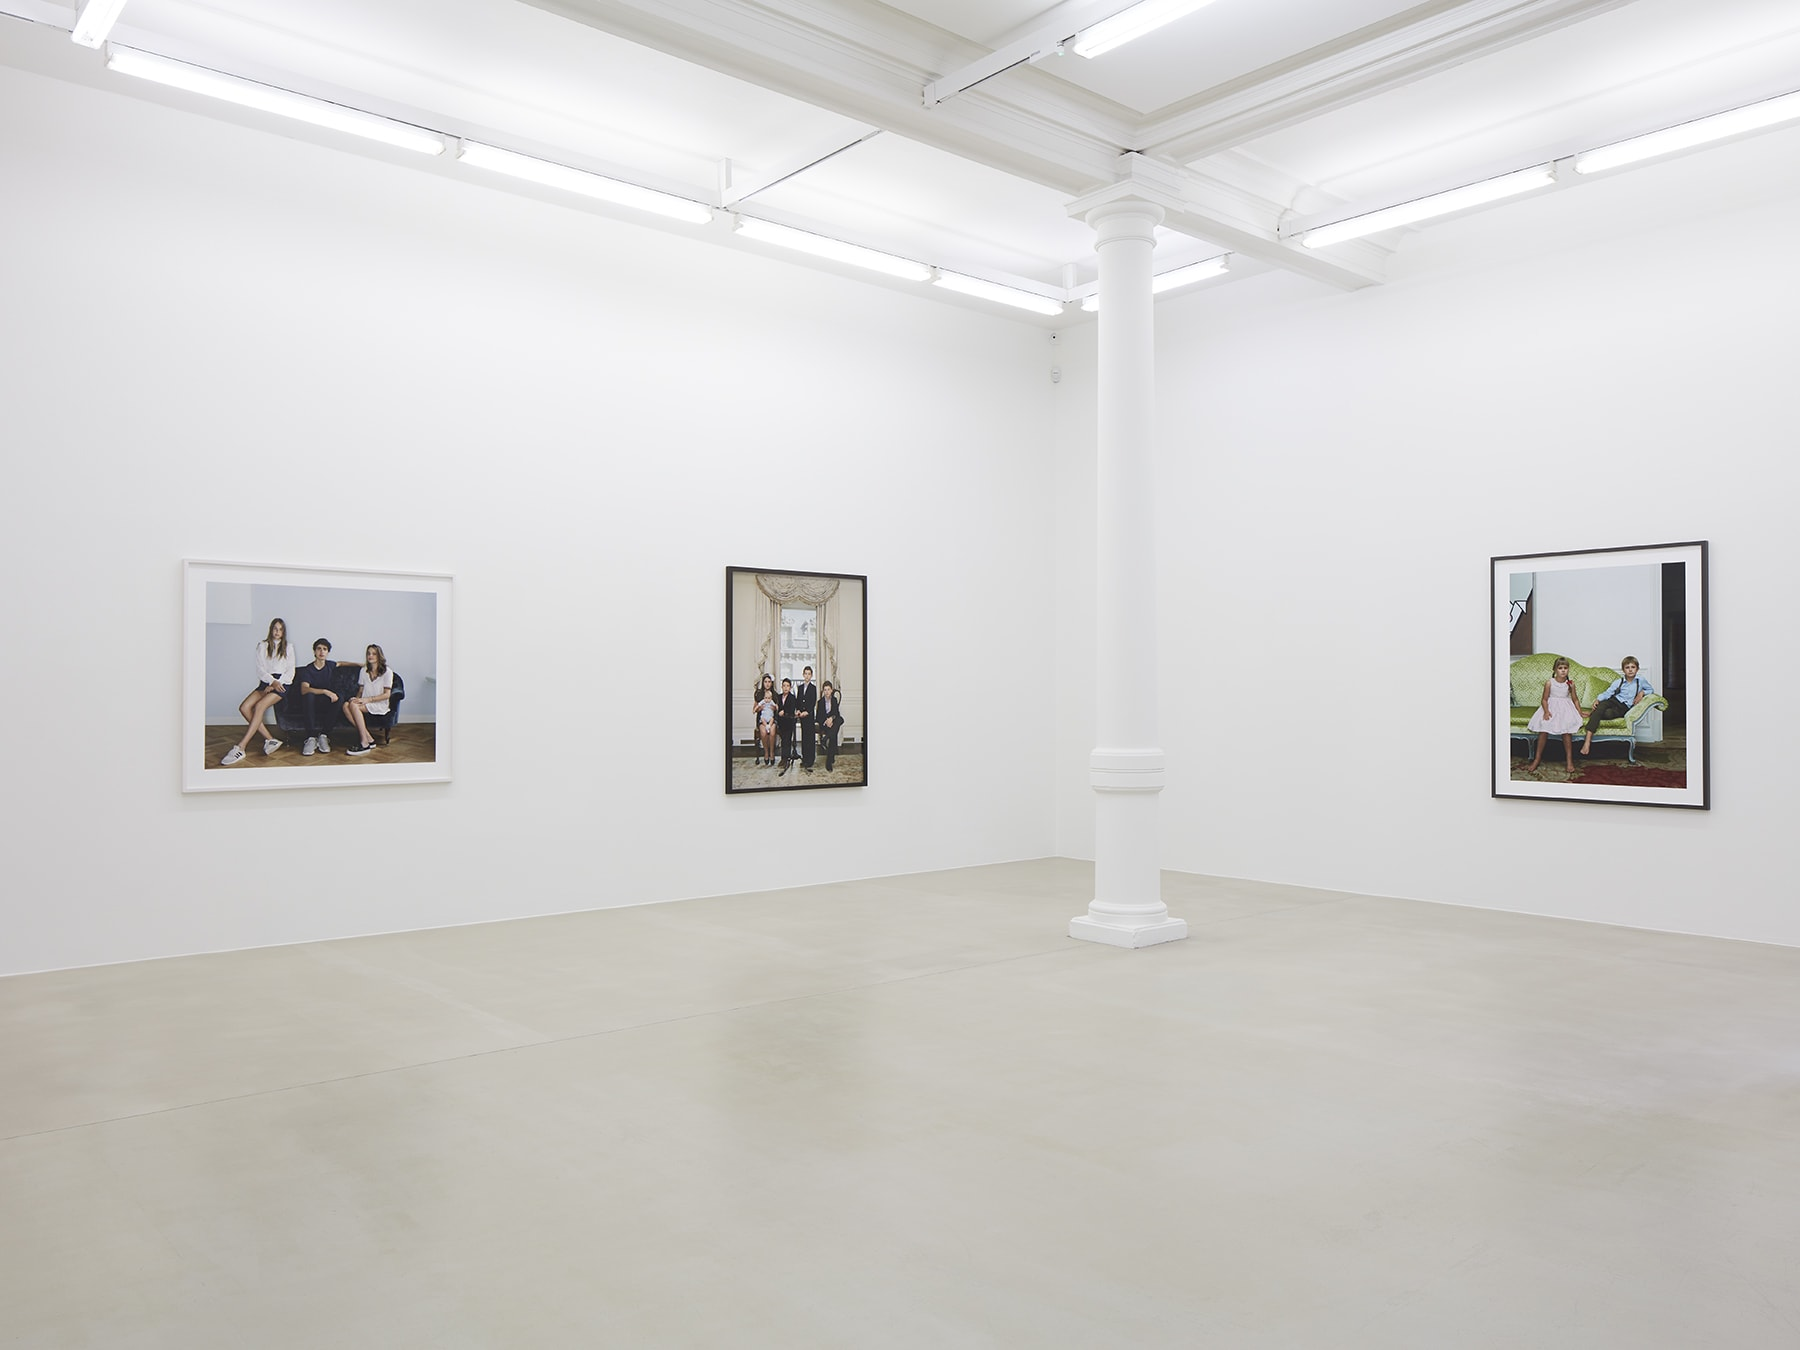 3 framed photographs in Rineke Dijkstra's exhibition at Marian Goodman Gallery, London, March 2020